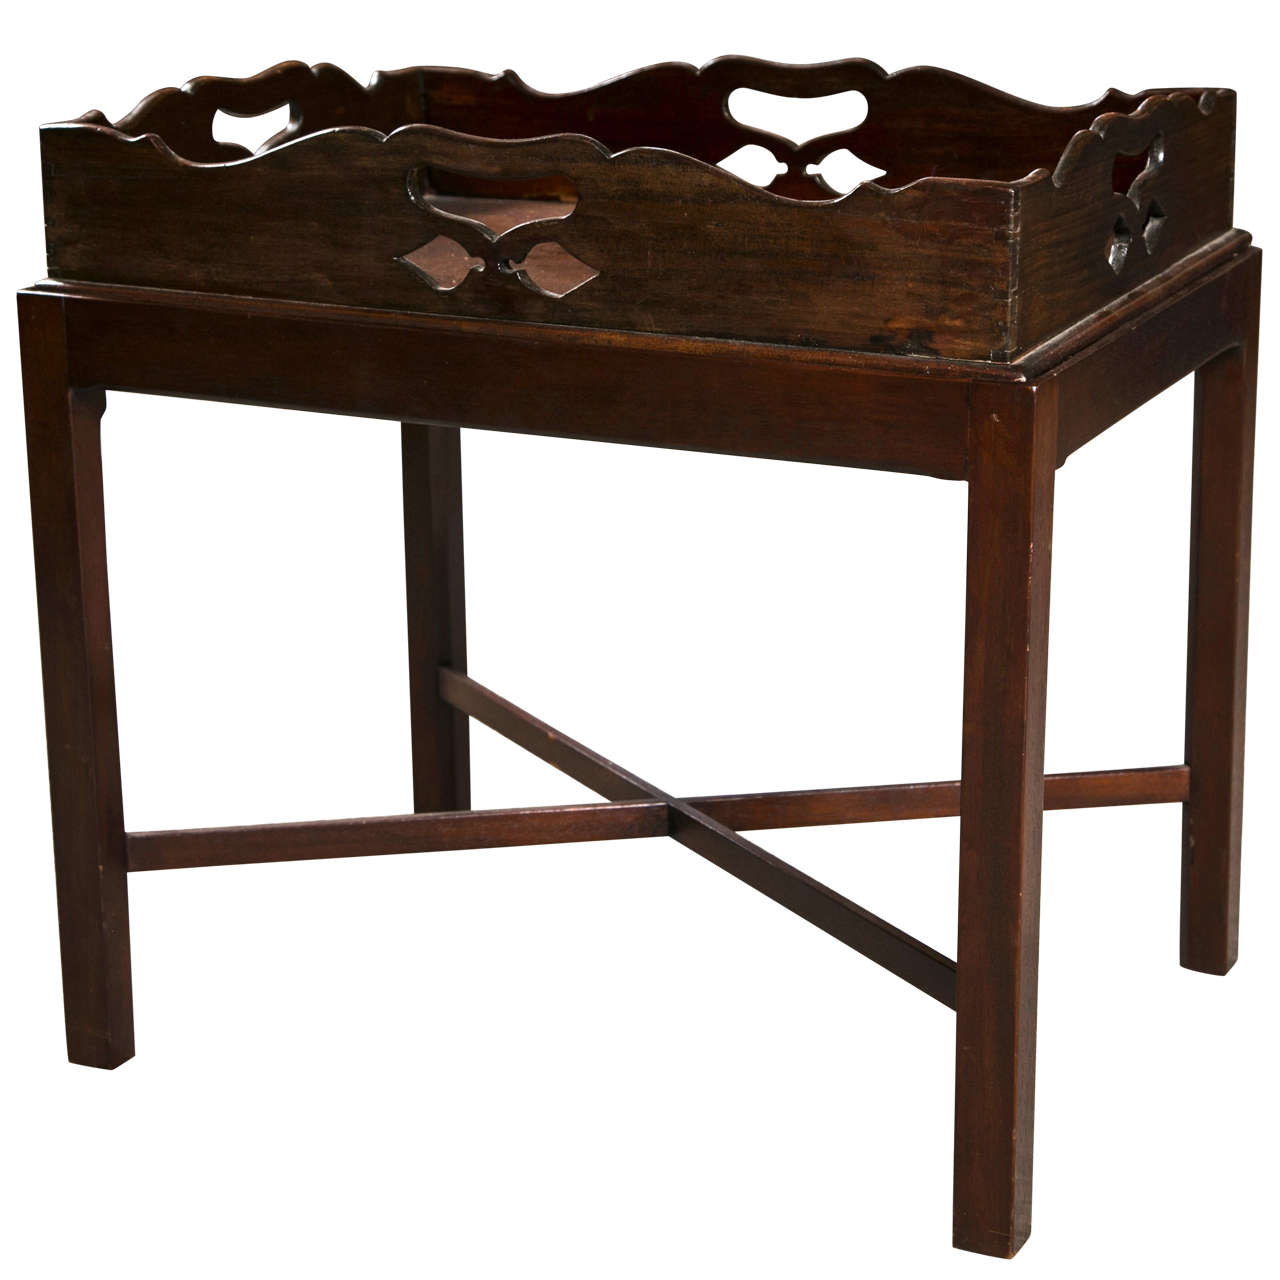 Mahogany Butlers Tray Table, late 19th C., England